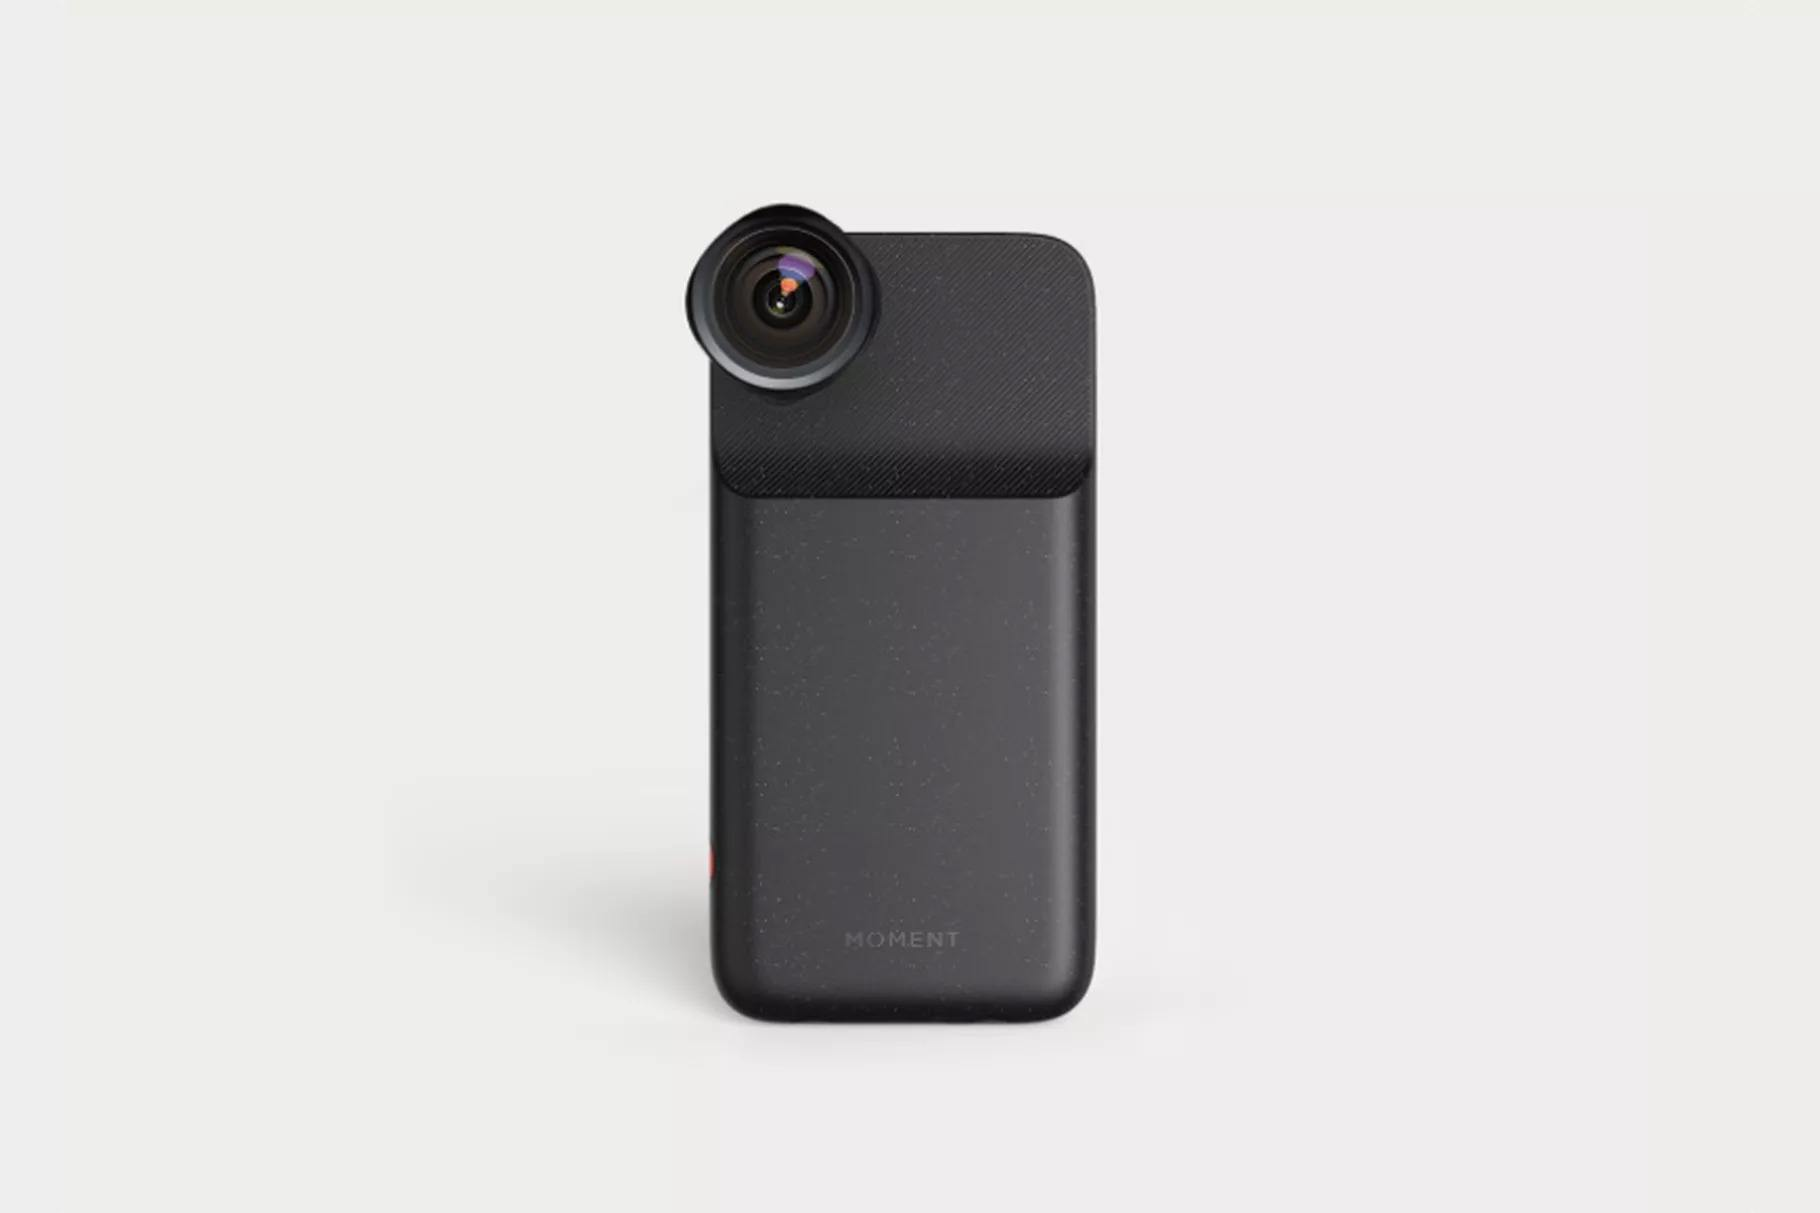 moment battery photo case iphone x